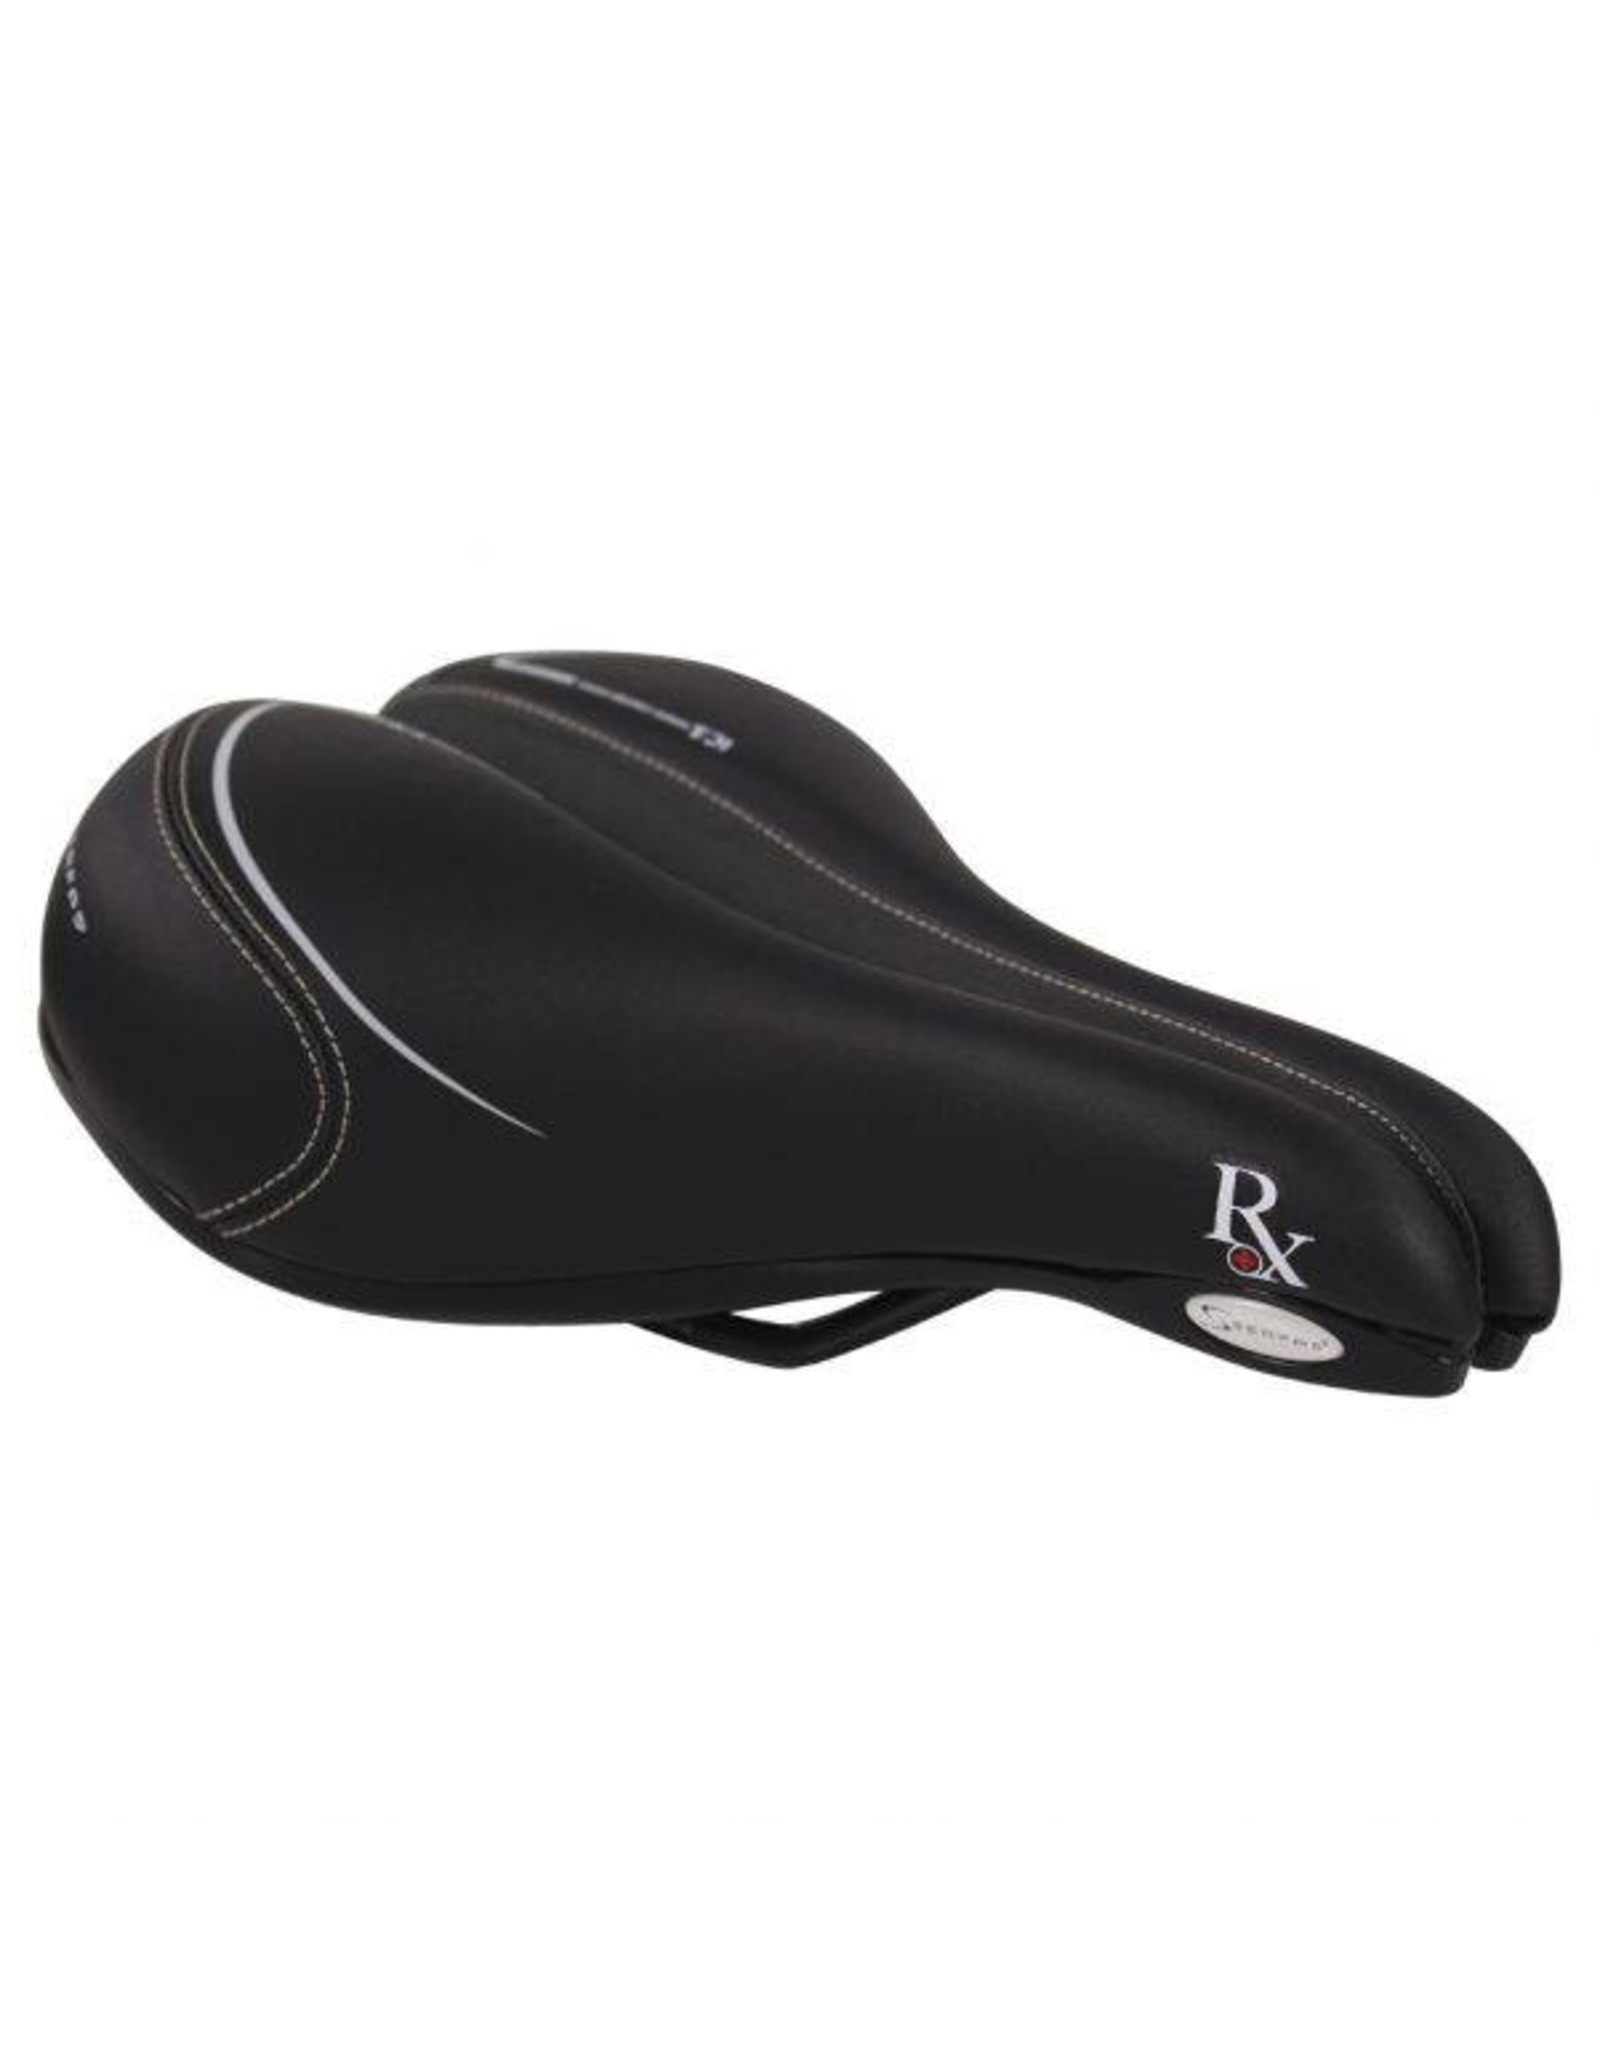 SERFAS Saddle Serfas RX Ladies Vinyl